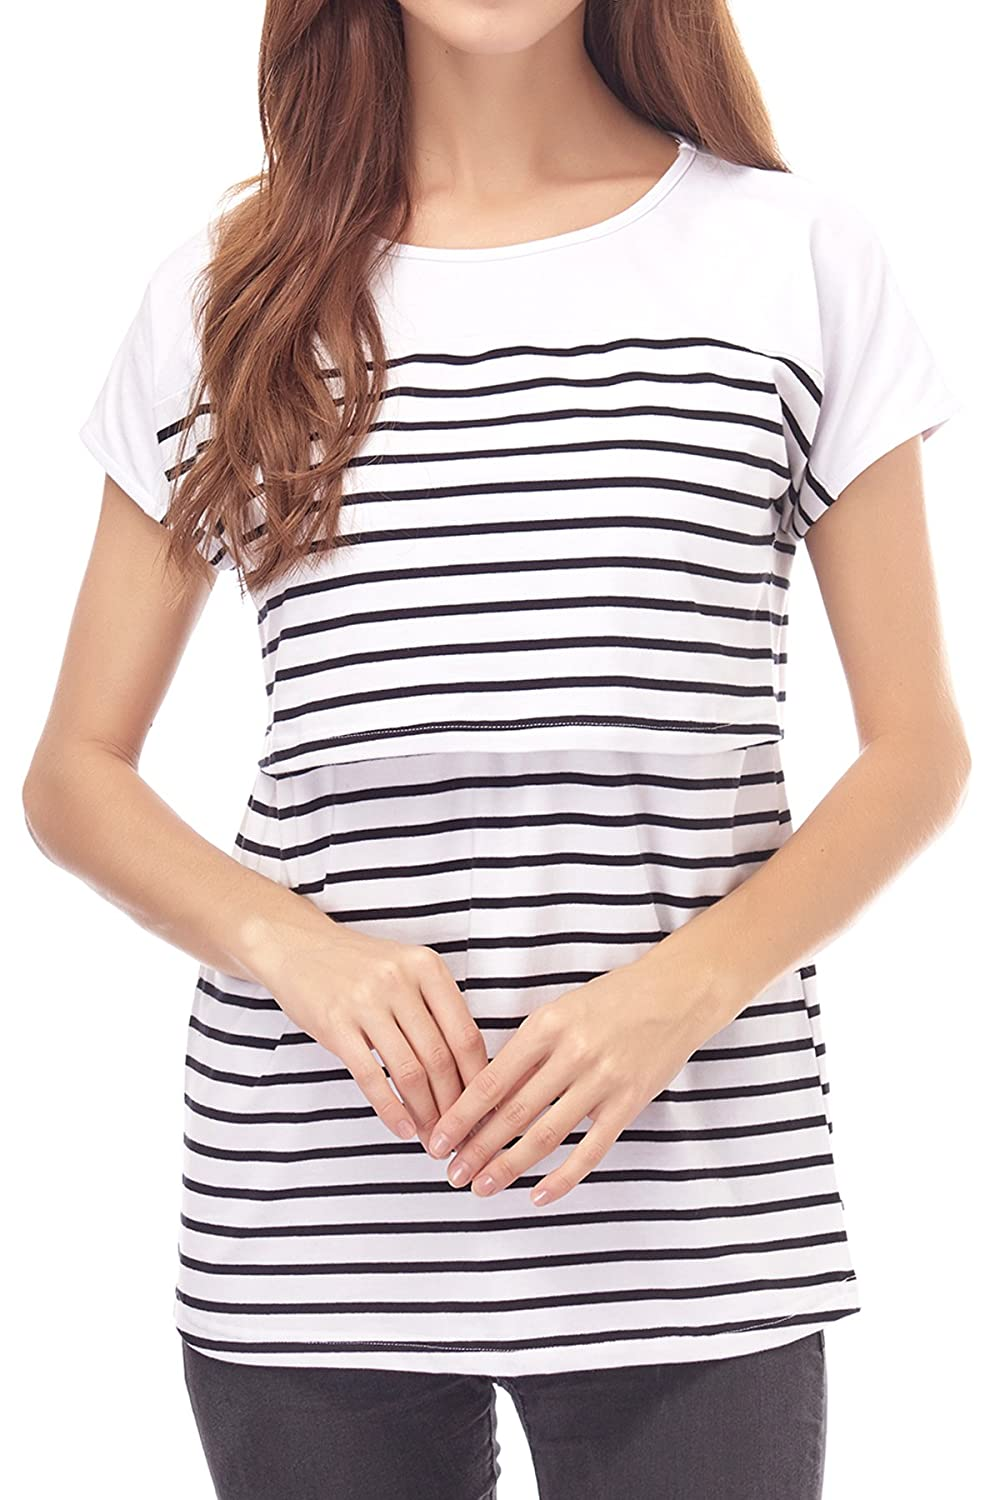 Smallshow Womens Maternity Nursing Tops Striped Breastfeeding T-Shirt